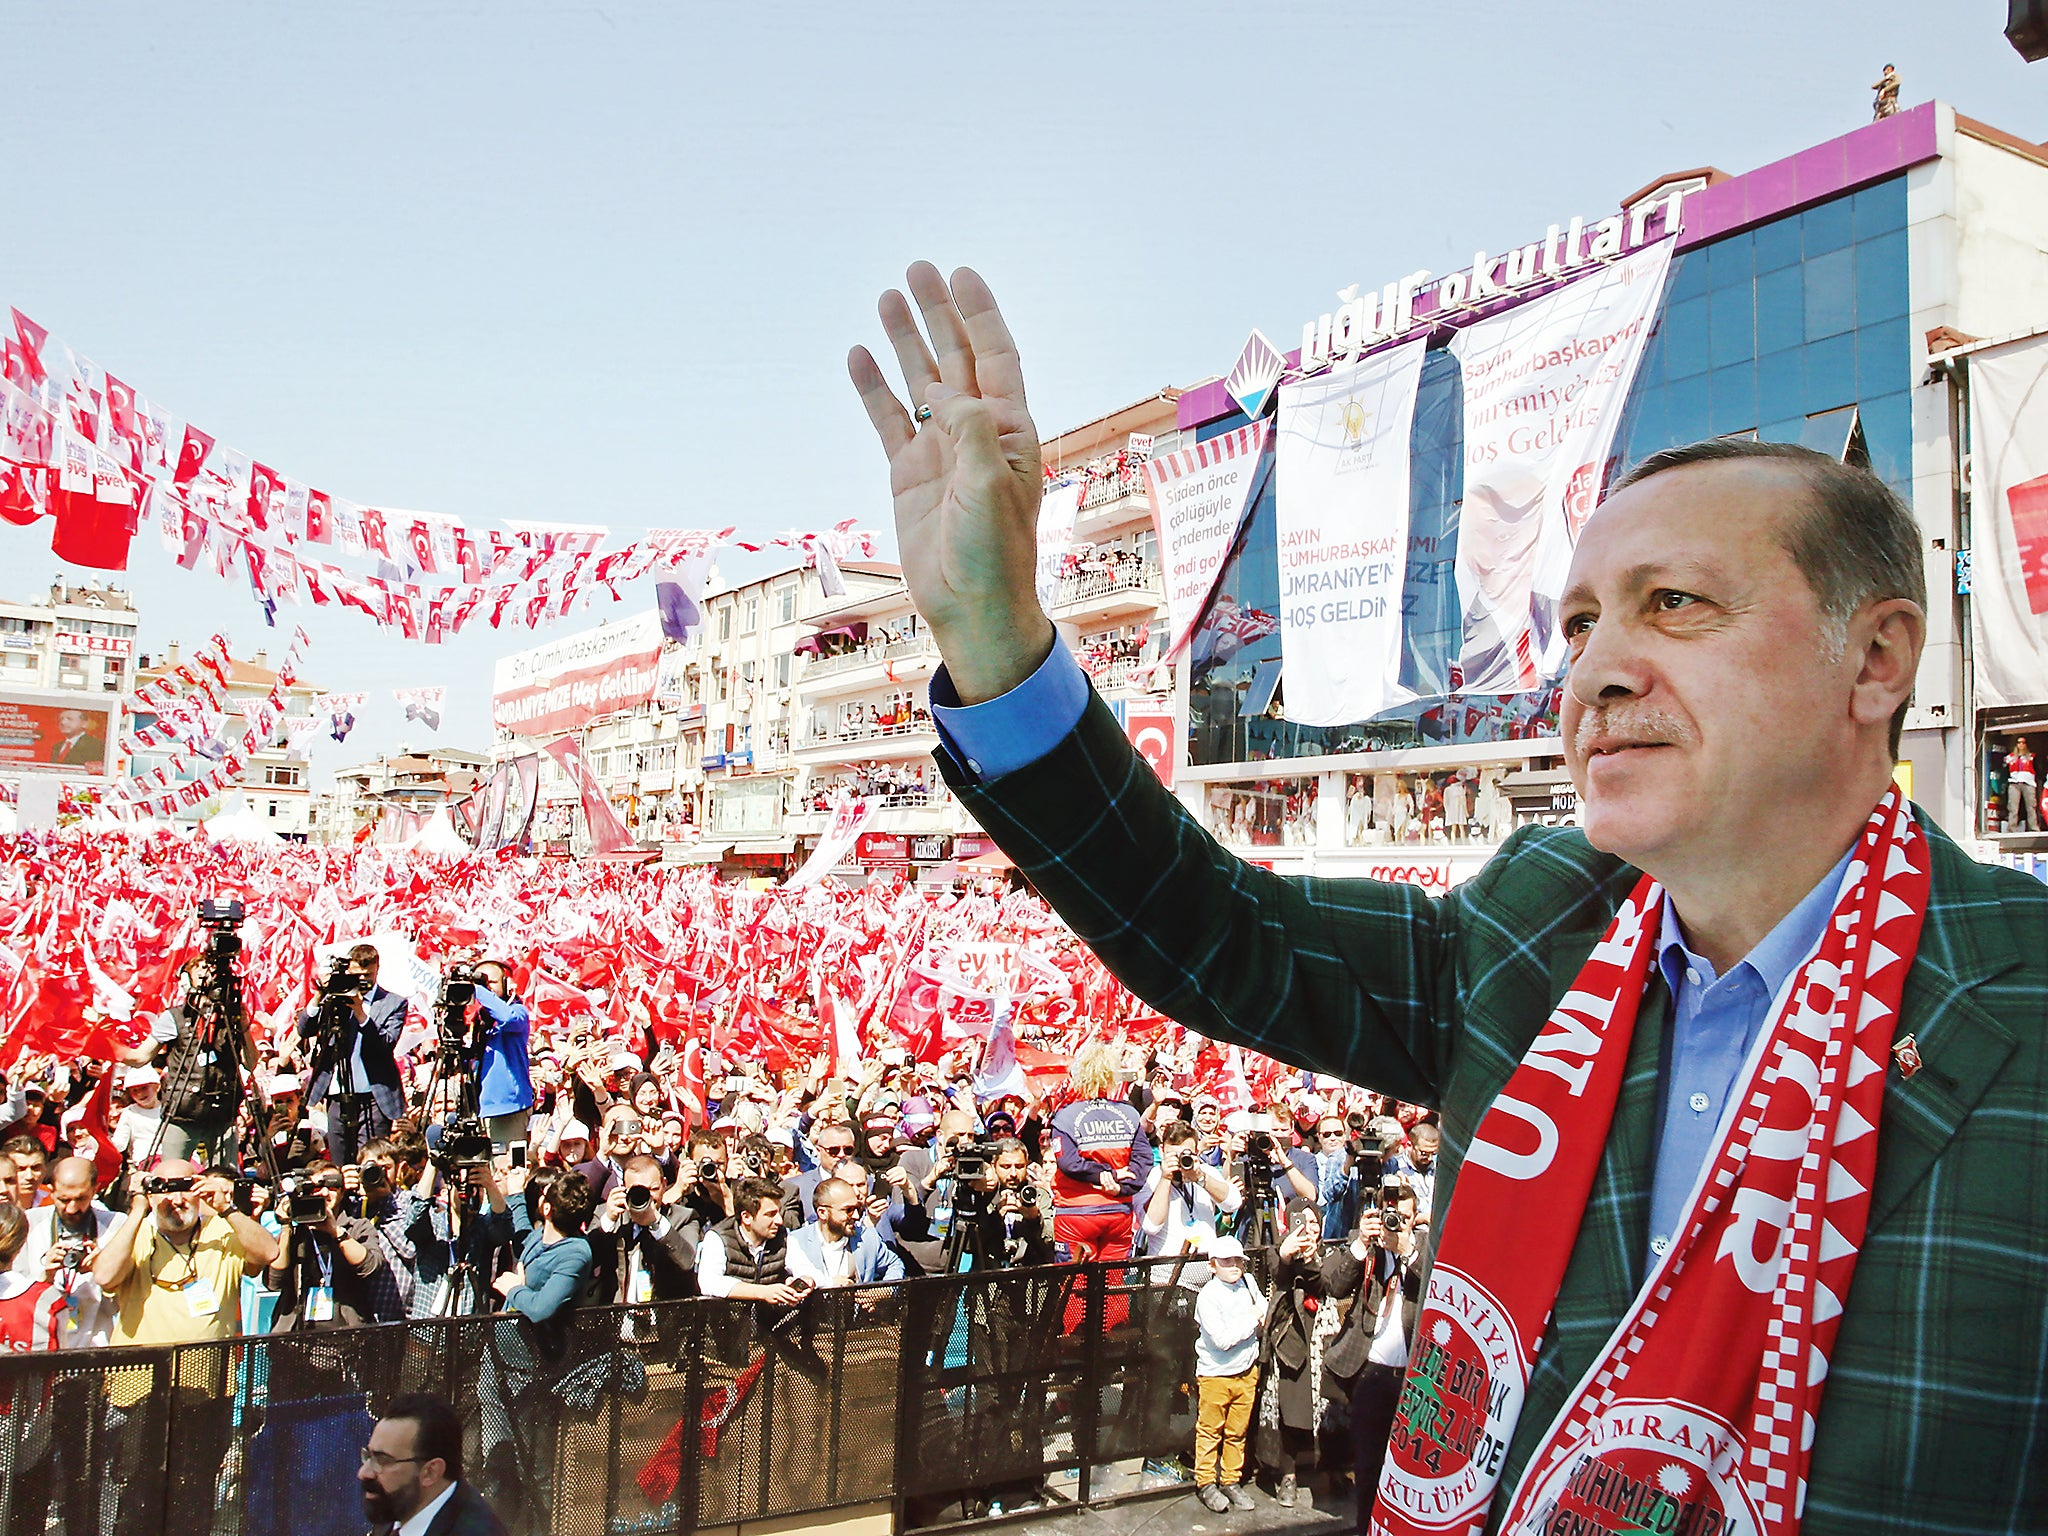 Erdogan's referendum on absolute power means the European dream is over for Turkey